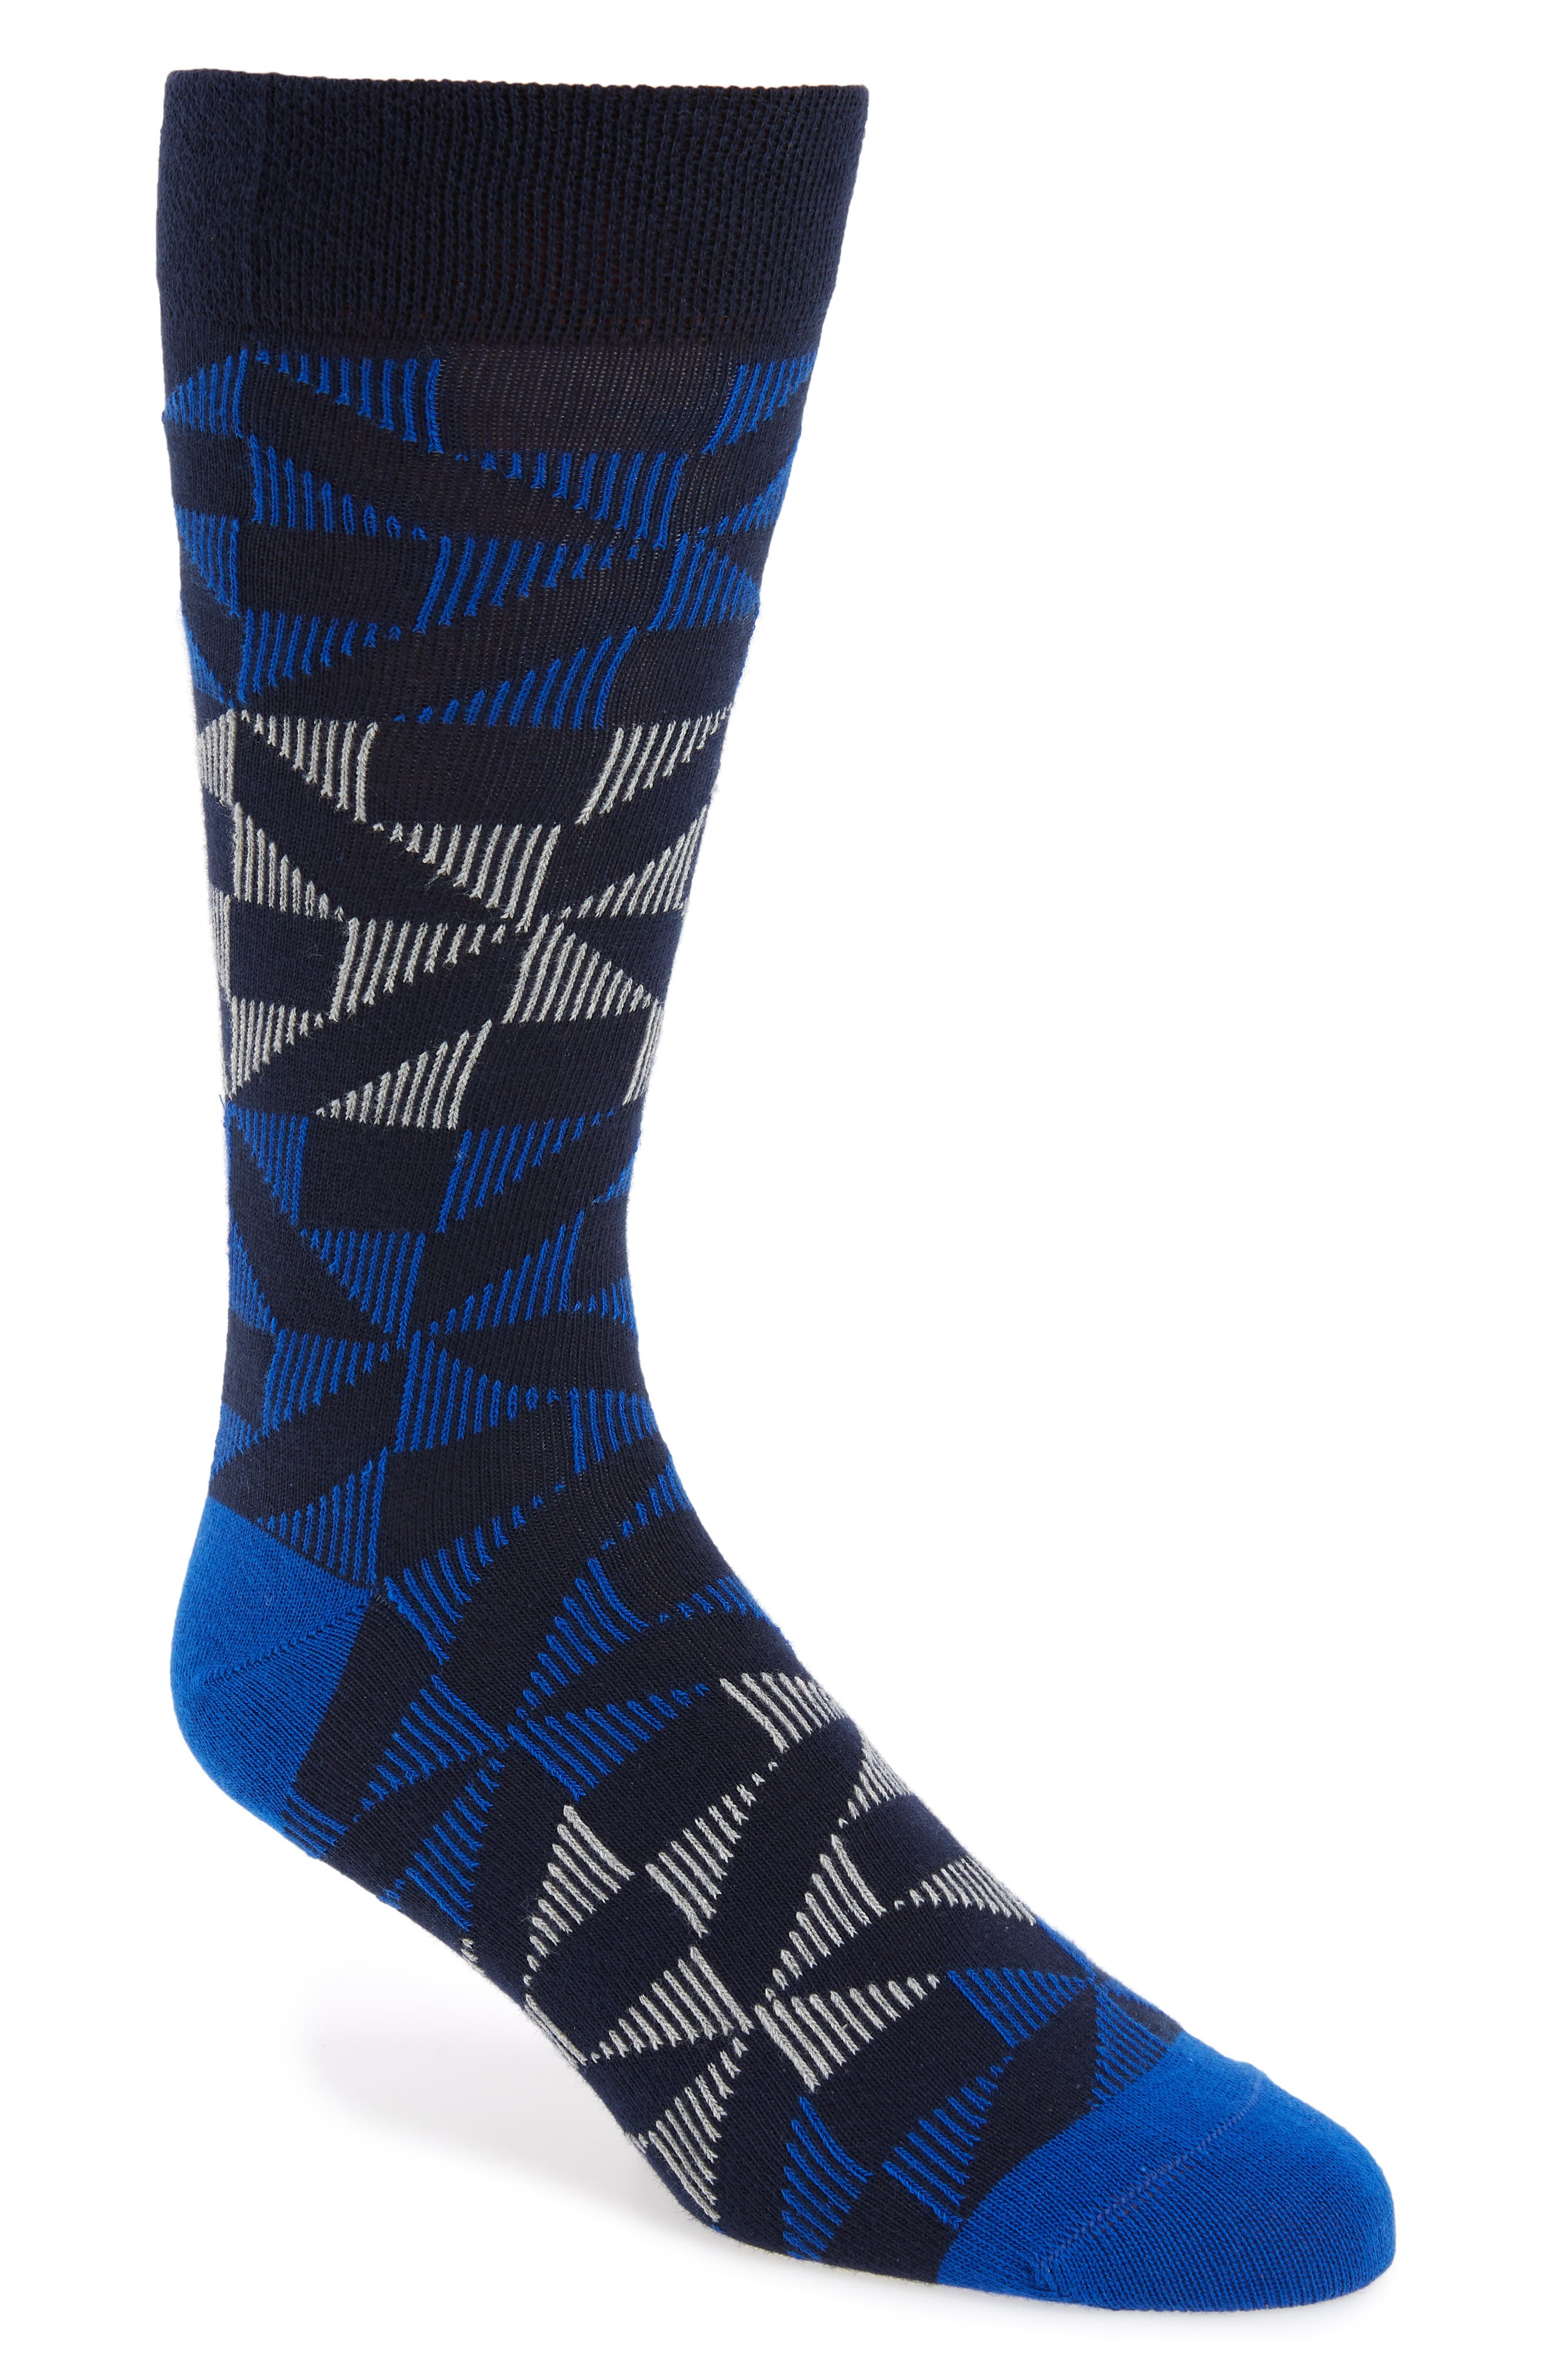 Newhome Geometric Socks,                         Main,                         color, 421